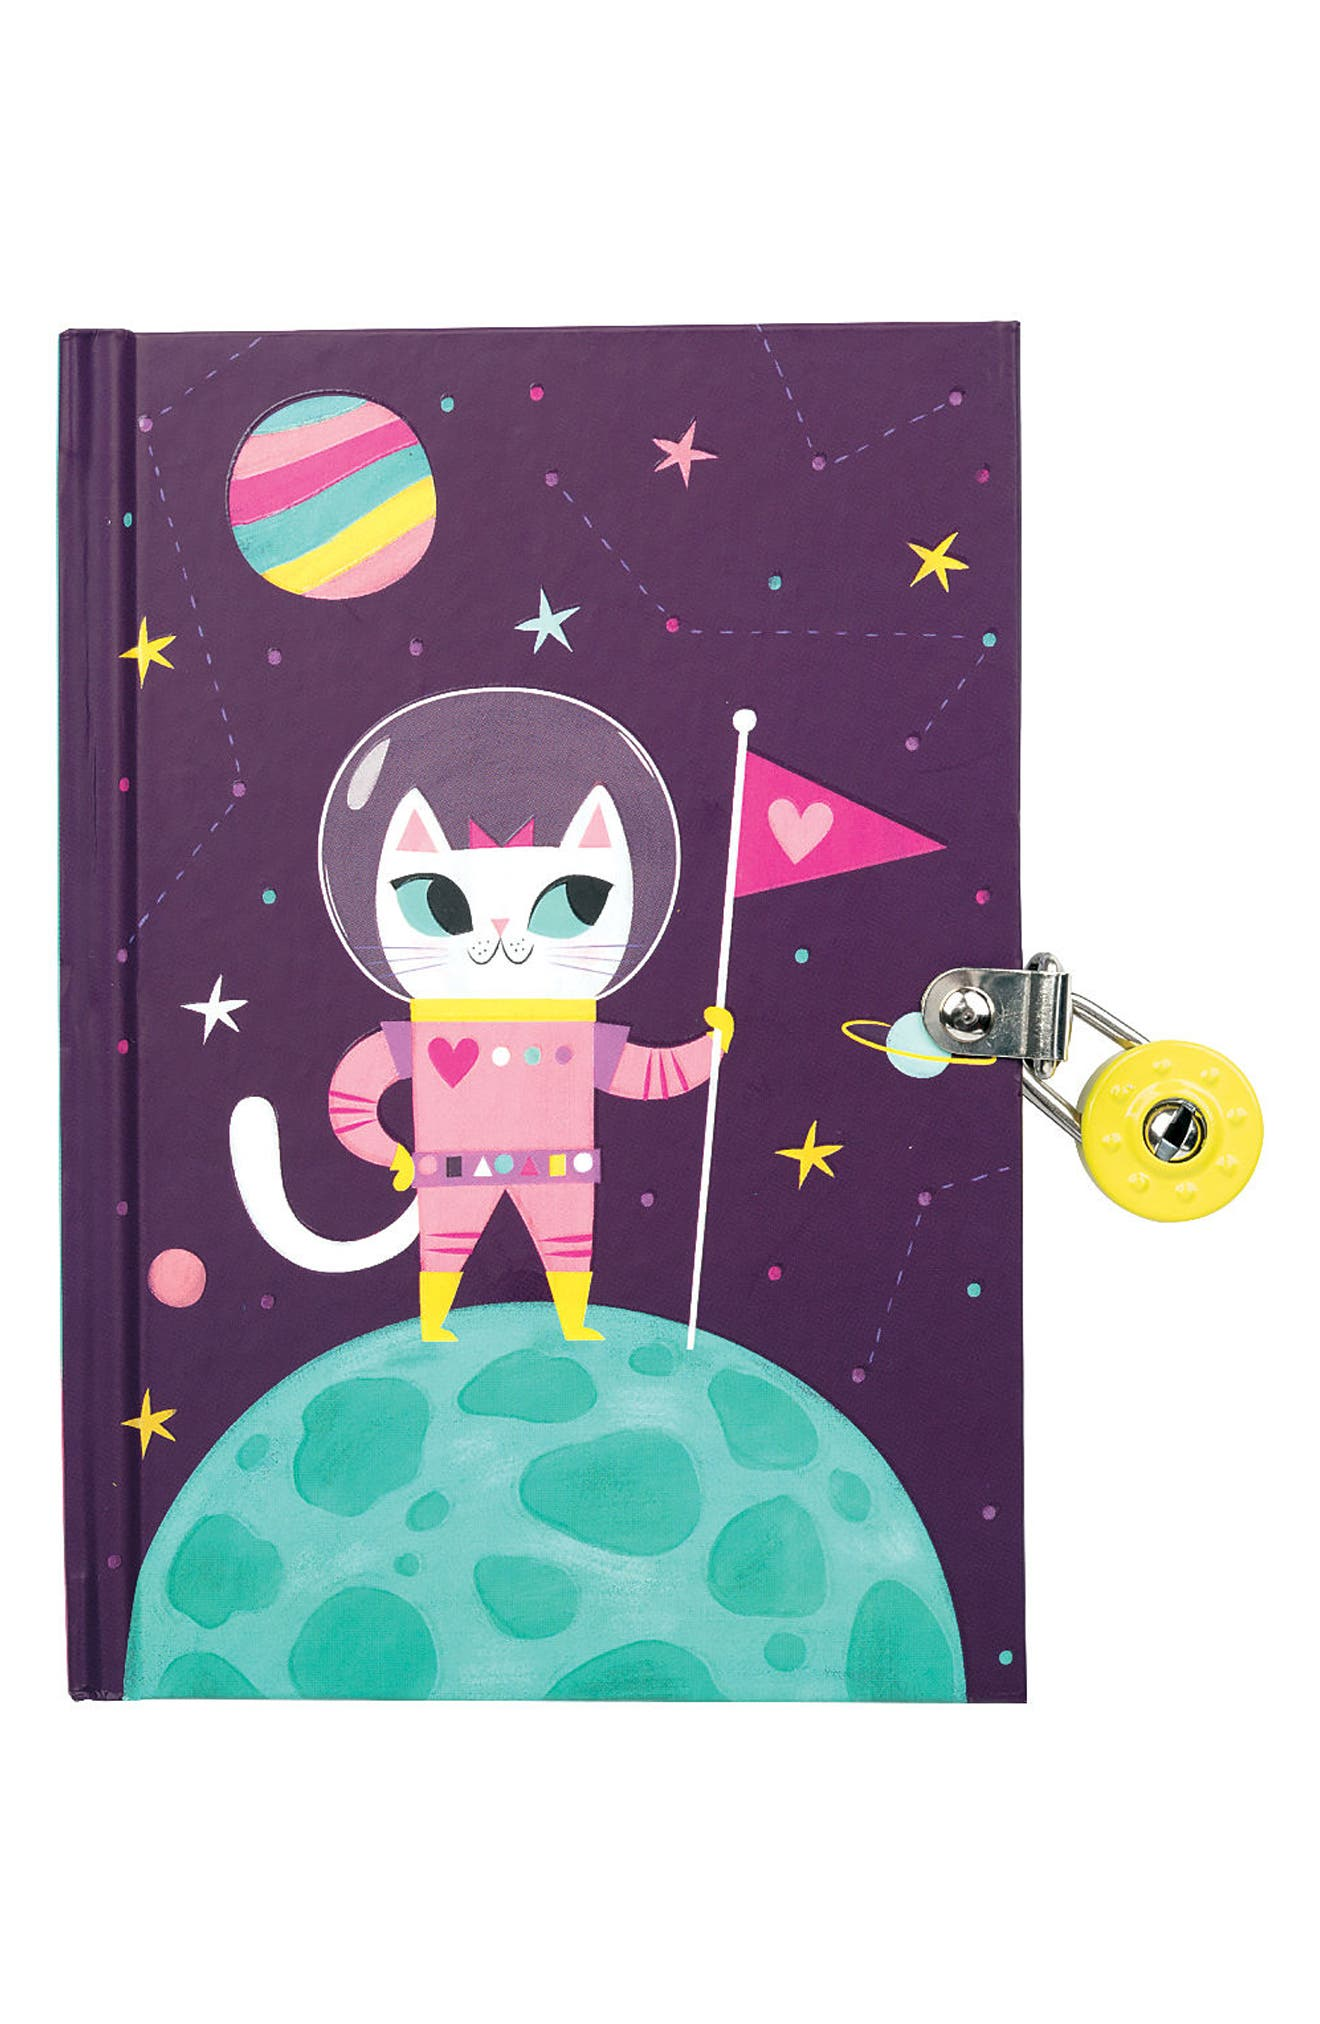 Space Cat Glow-in-the-Dark Locked Diary,                         Main,                         color, 500